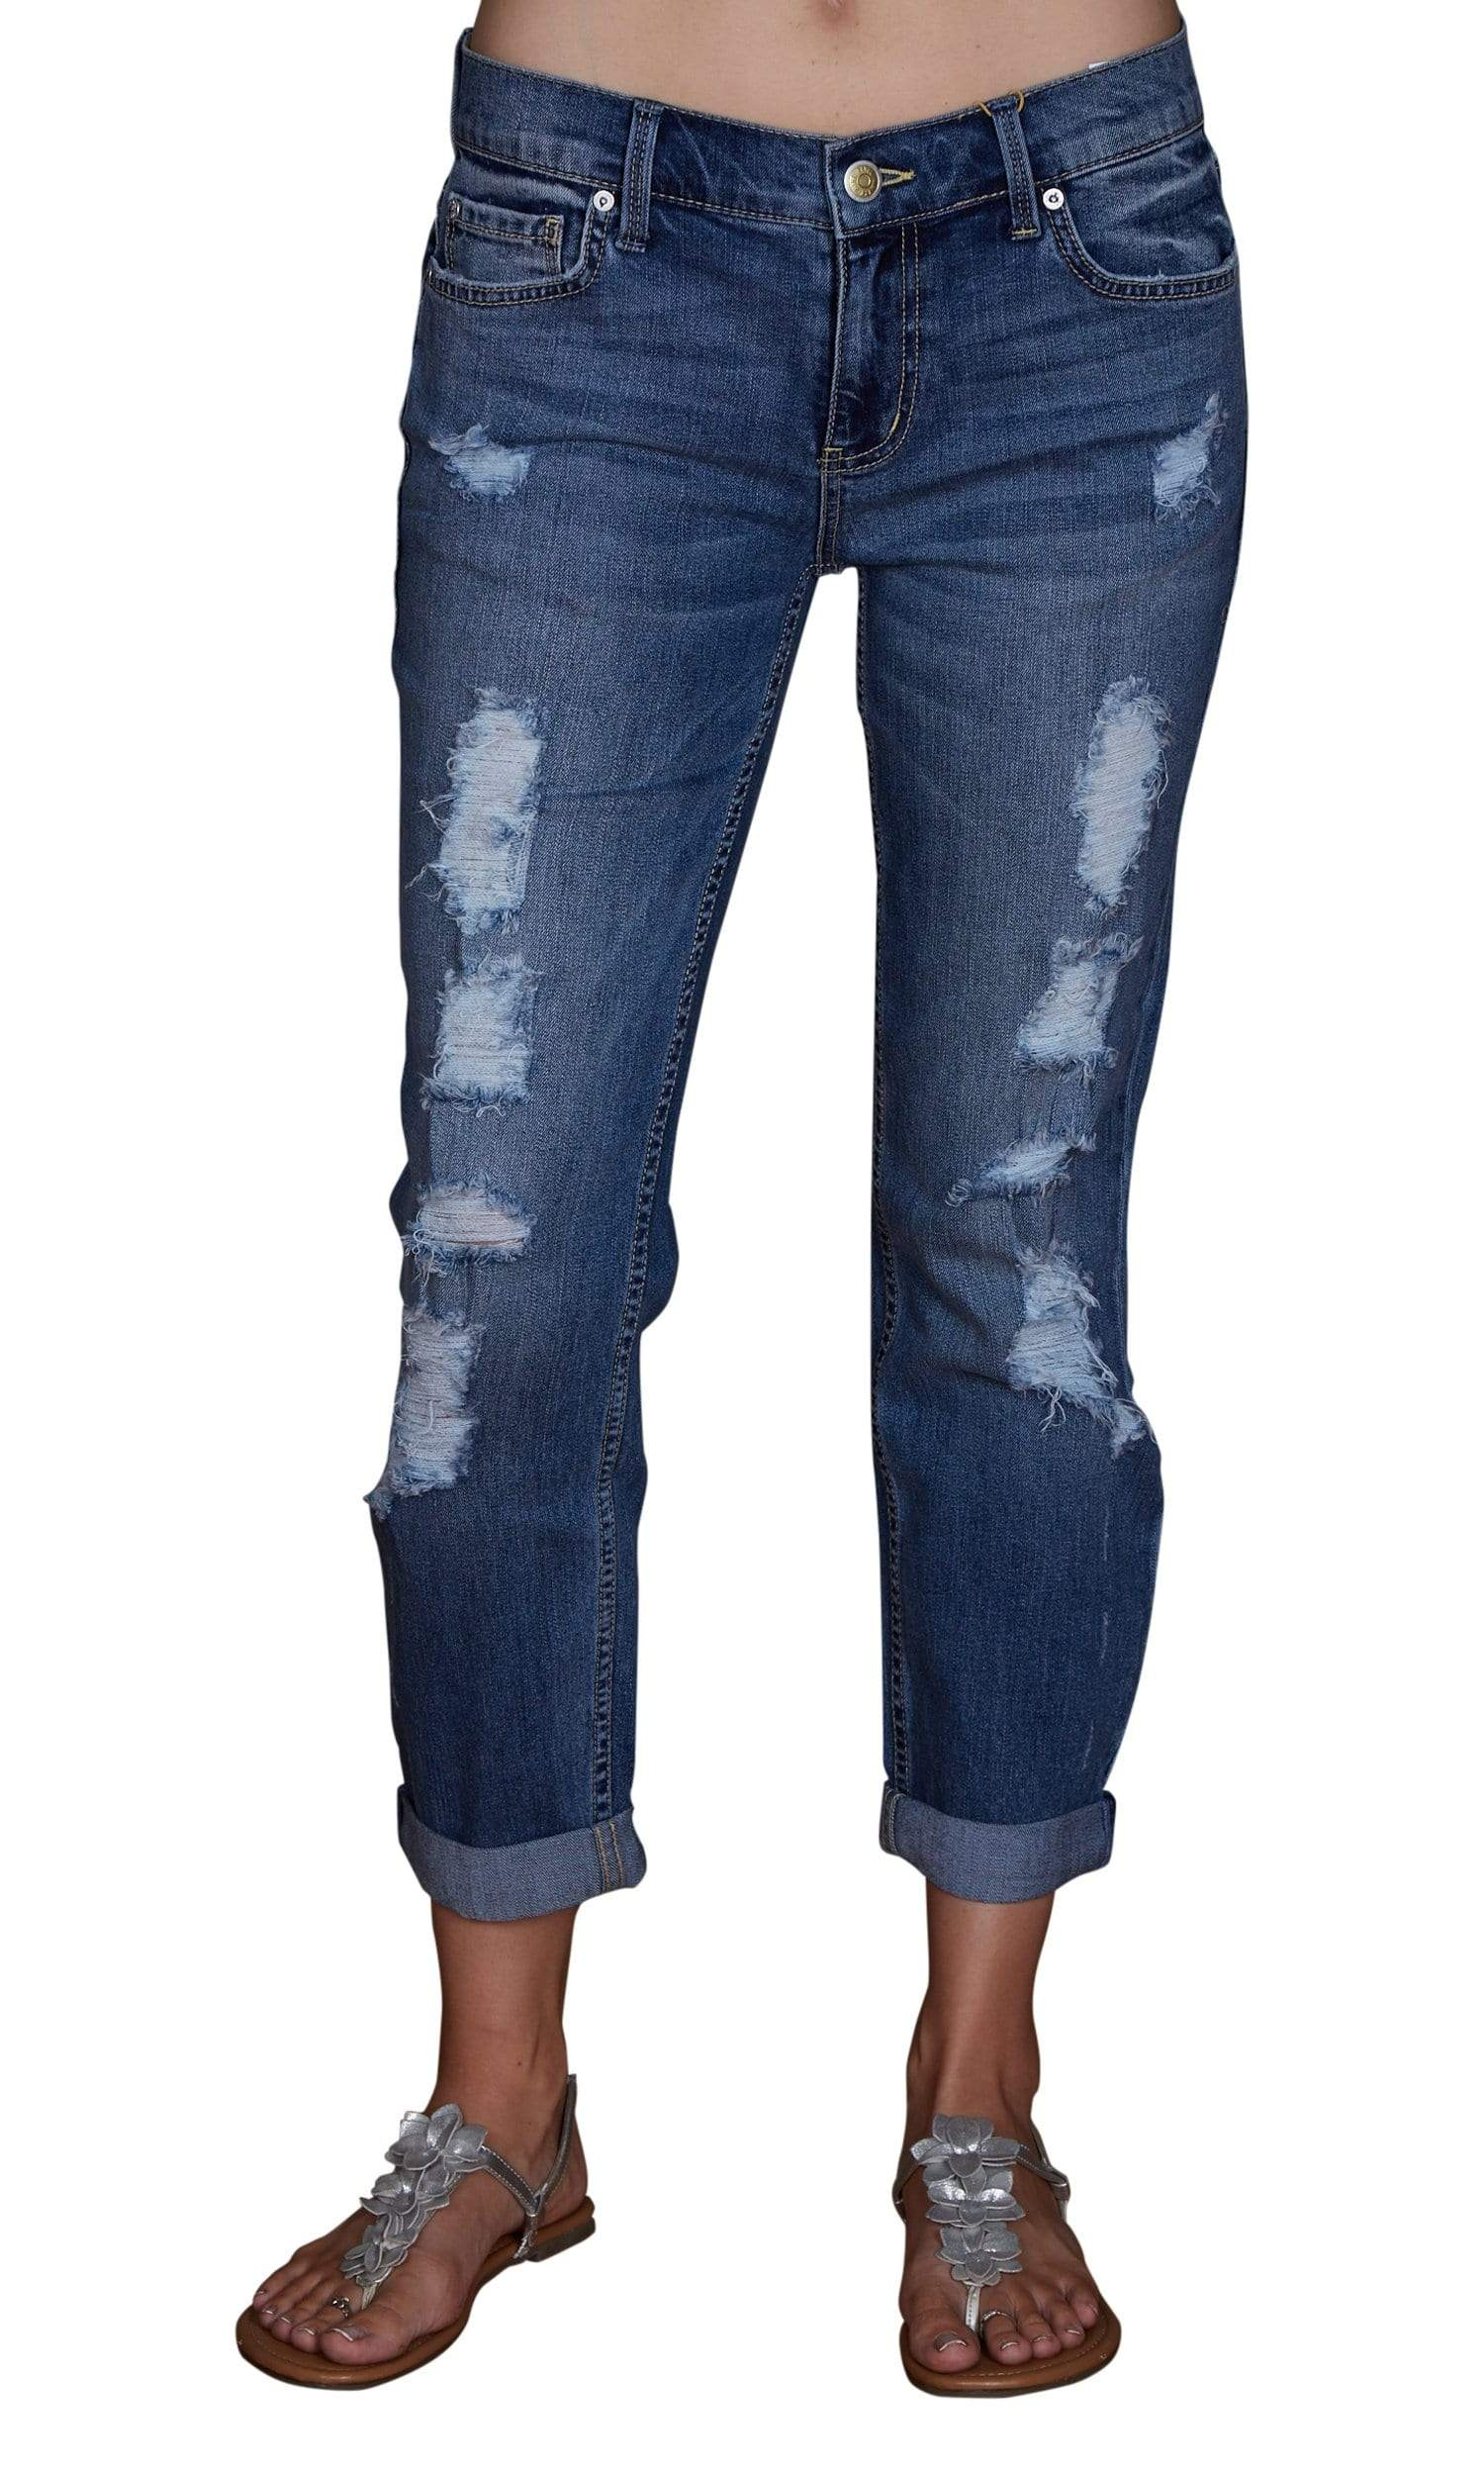 Level 99 Sienna Tomboy Fit Denim - Seaside